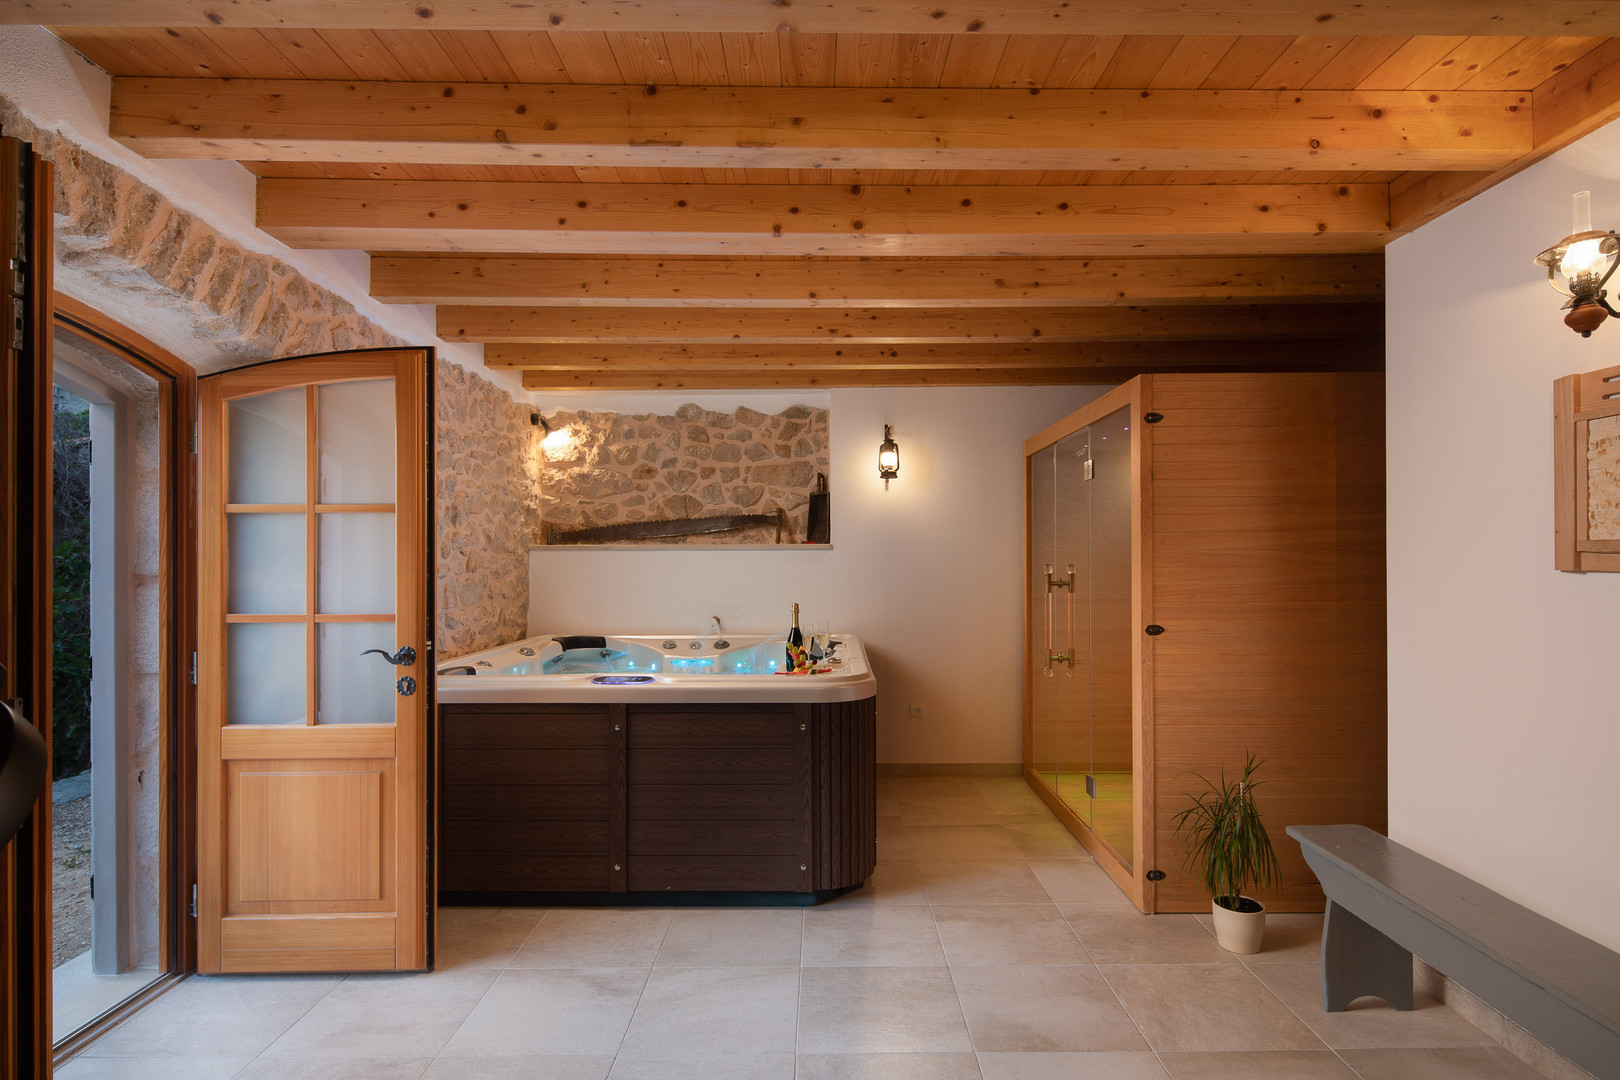 Jacuzzi and sauna